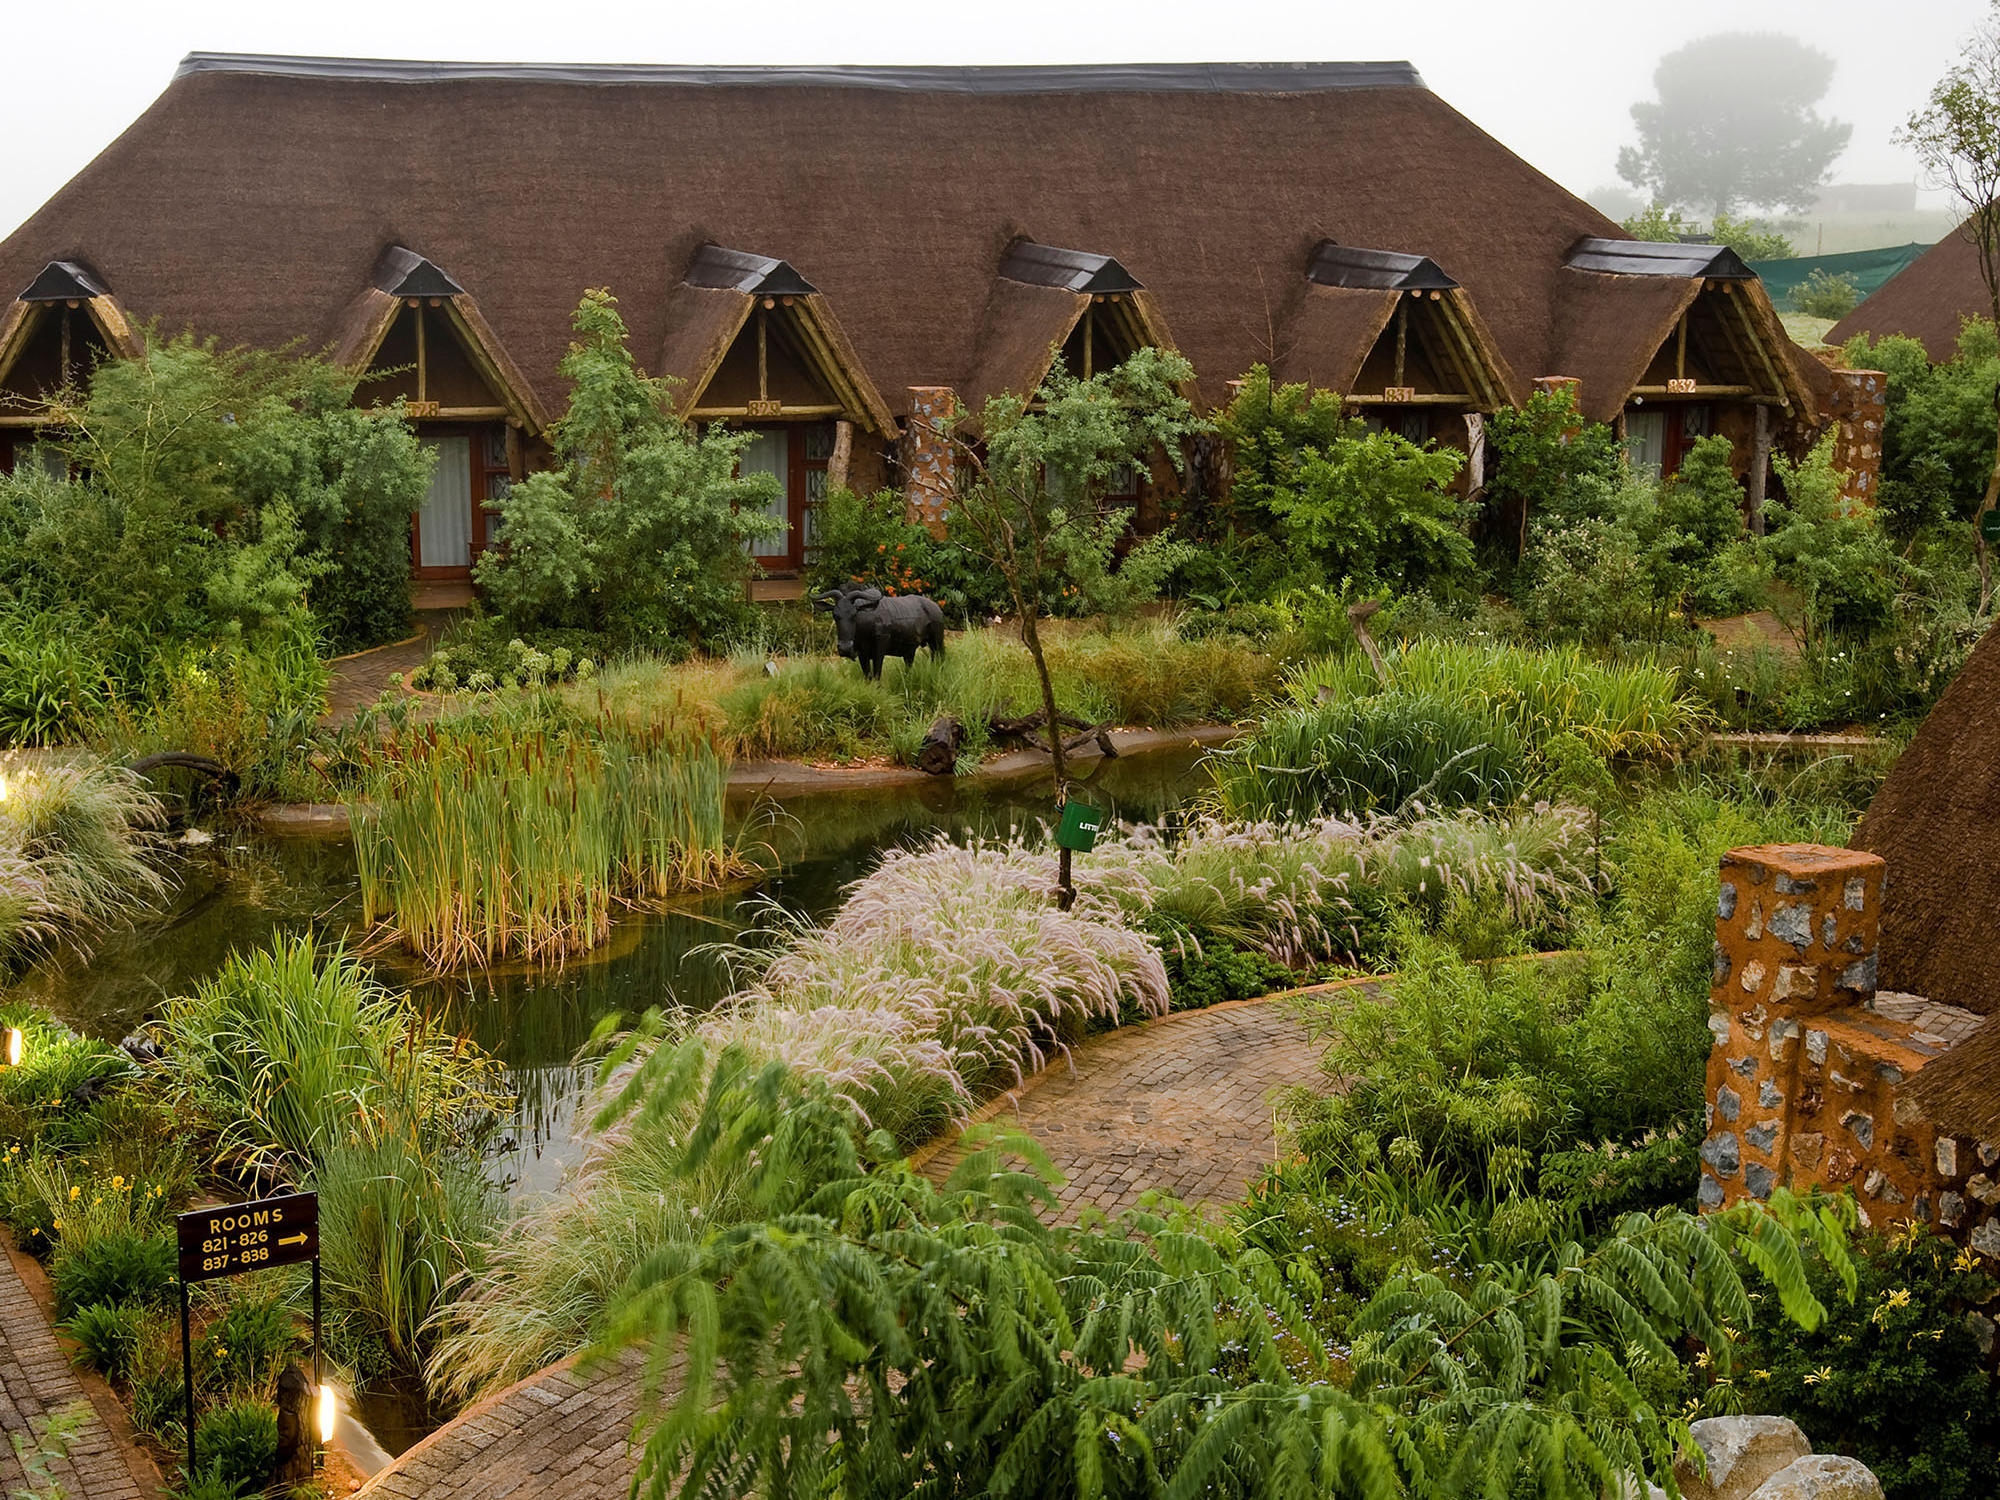 Landscape of the hotel with green garden